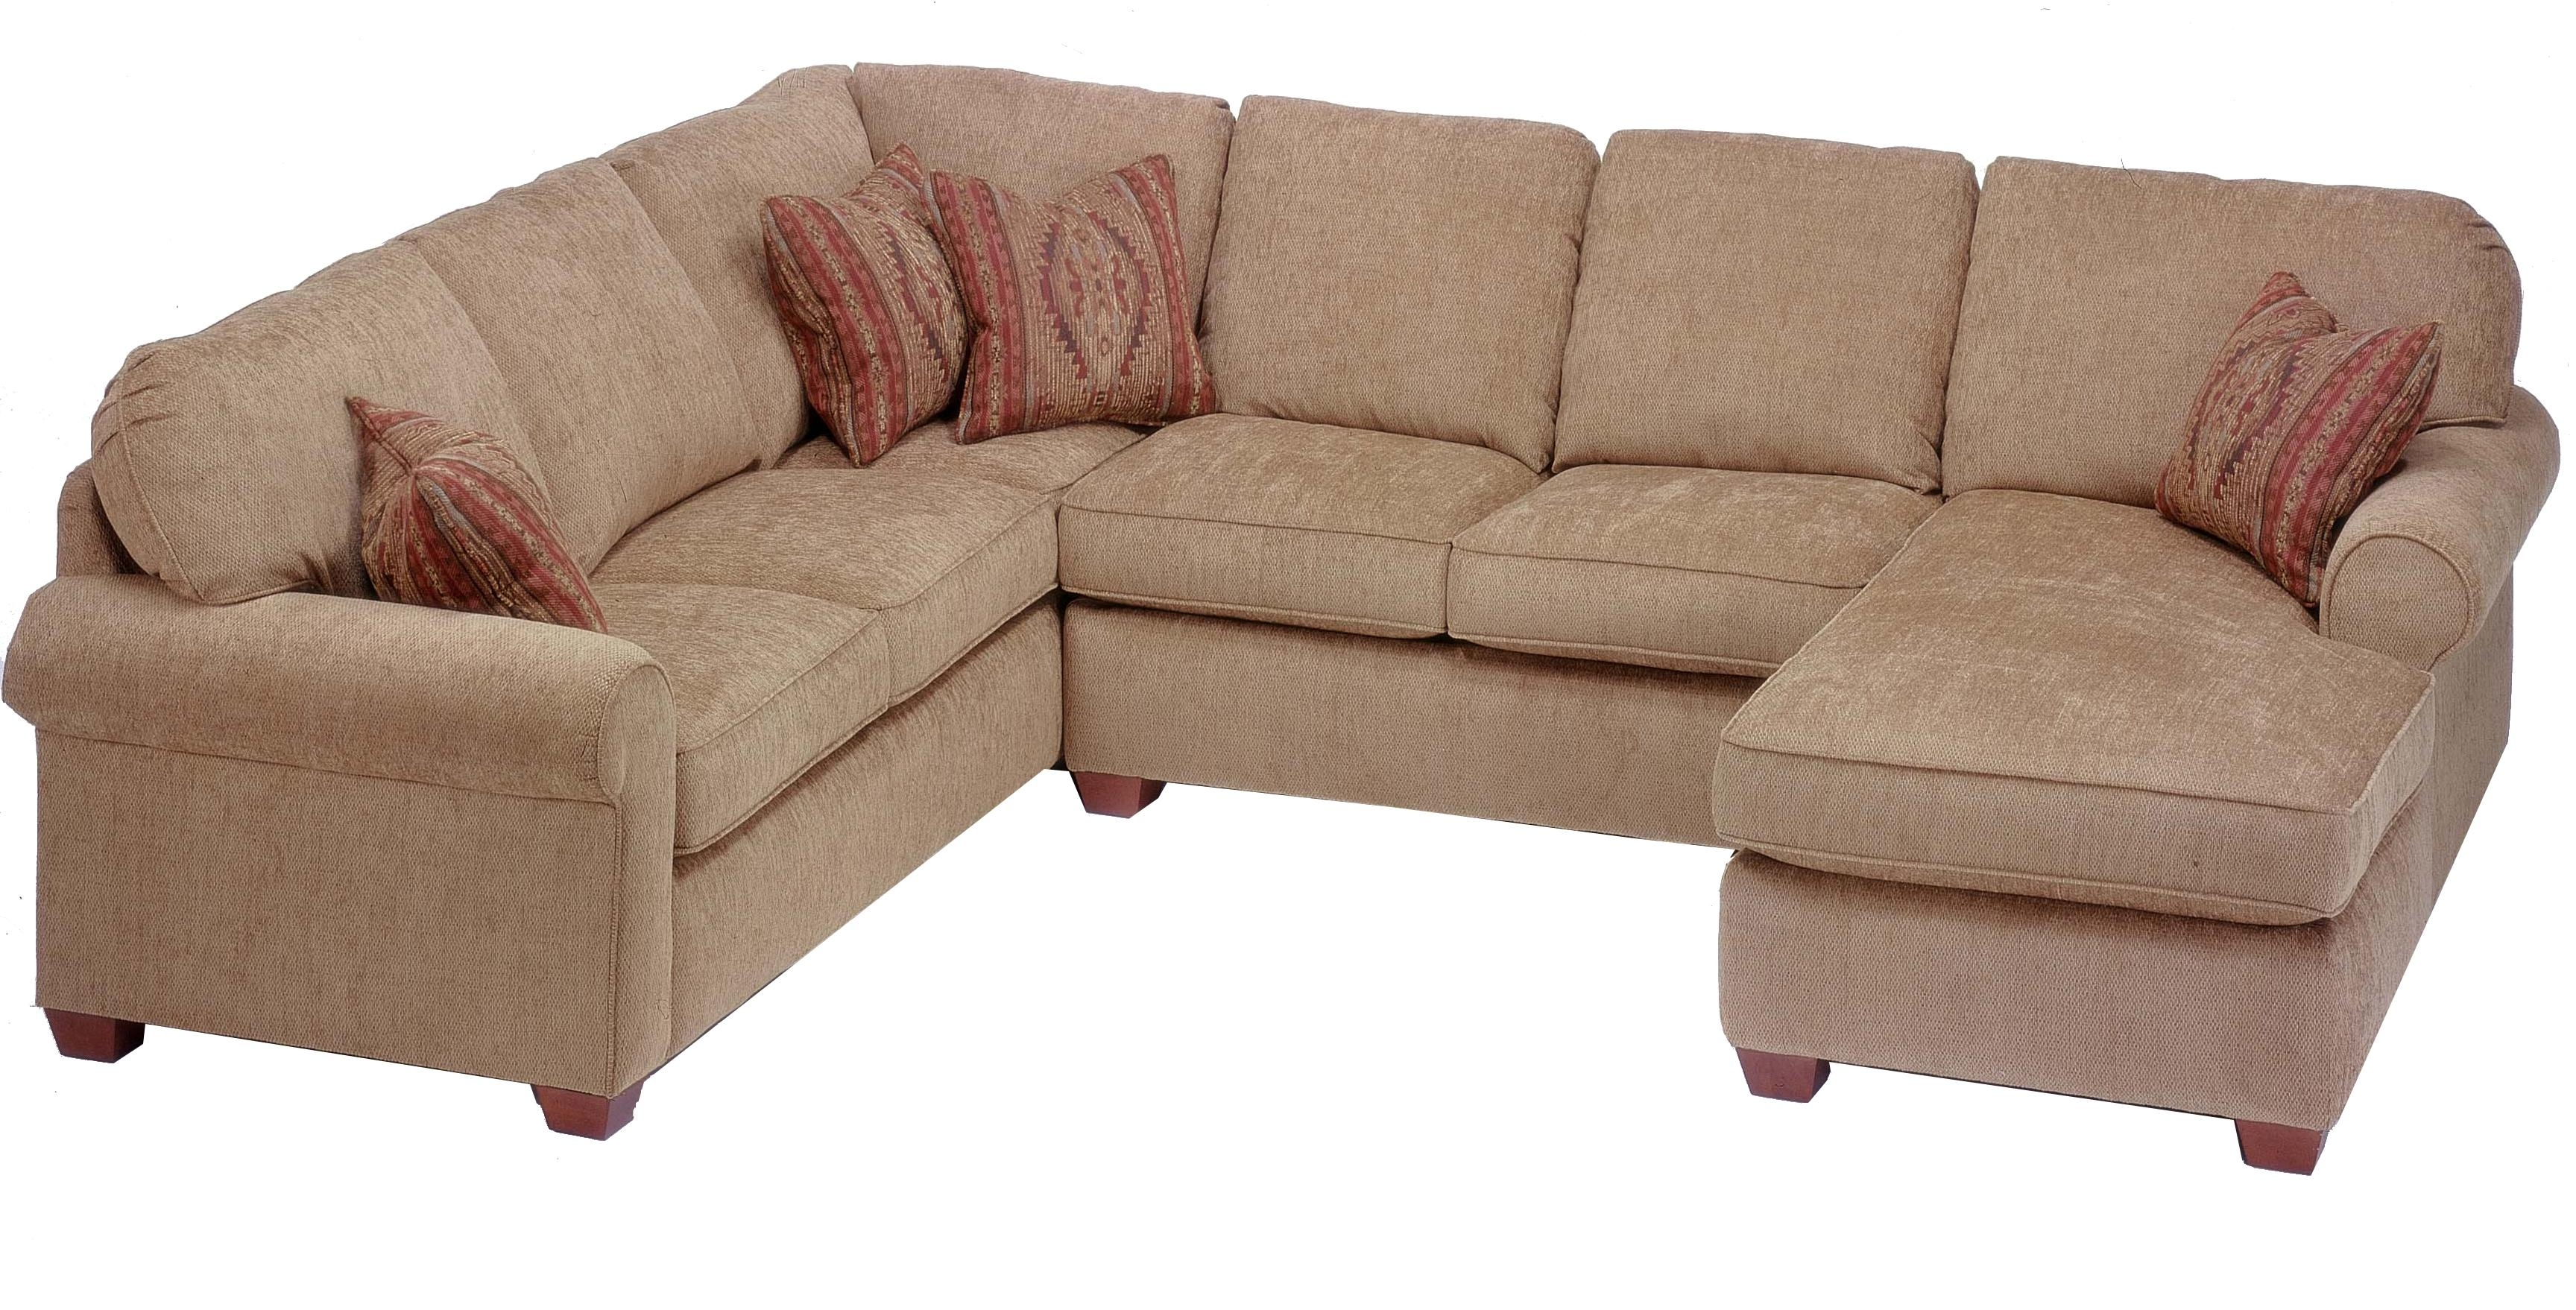 Flexsteel Thornton 3 Piece Sectional With Chaise – Ahfa – Sofa Throughout Newest Johnson City Tn Sectional Sofas (View 9 of 20)